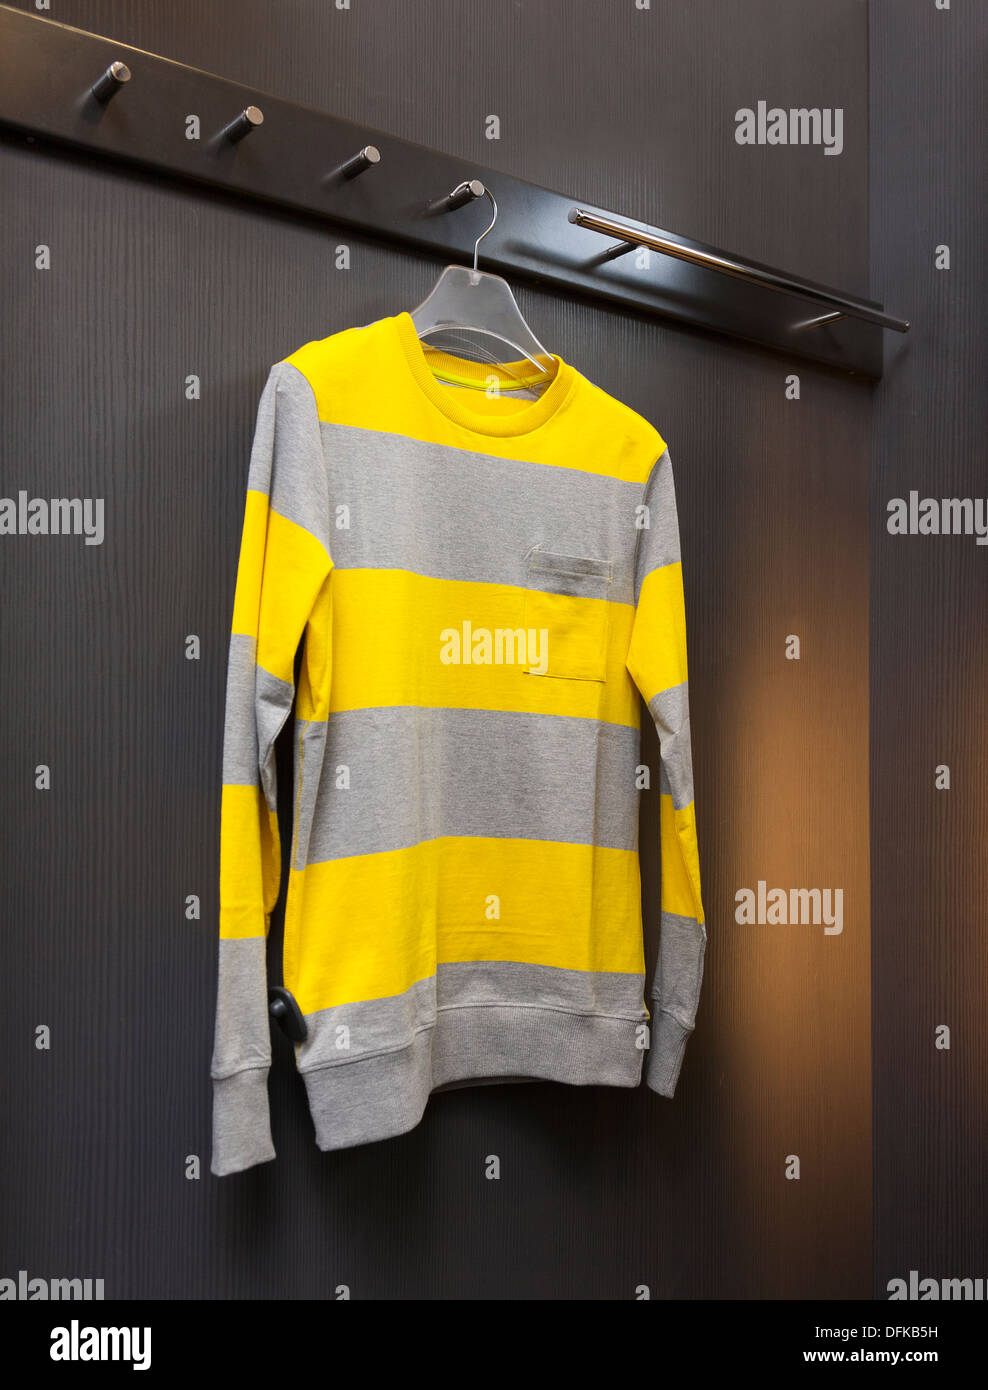 Close up of sweater, sweatshirt in retail shop dressing cabin. Changing room. - Stock Image